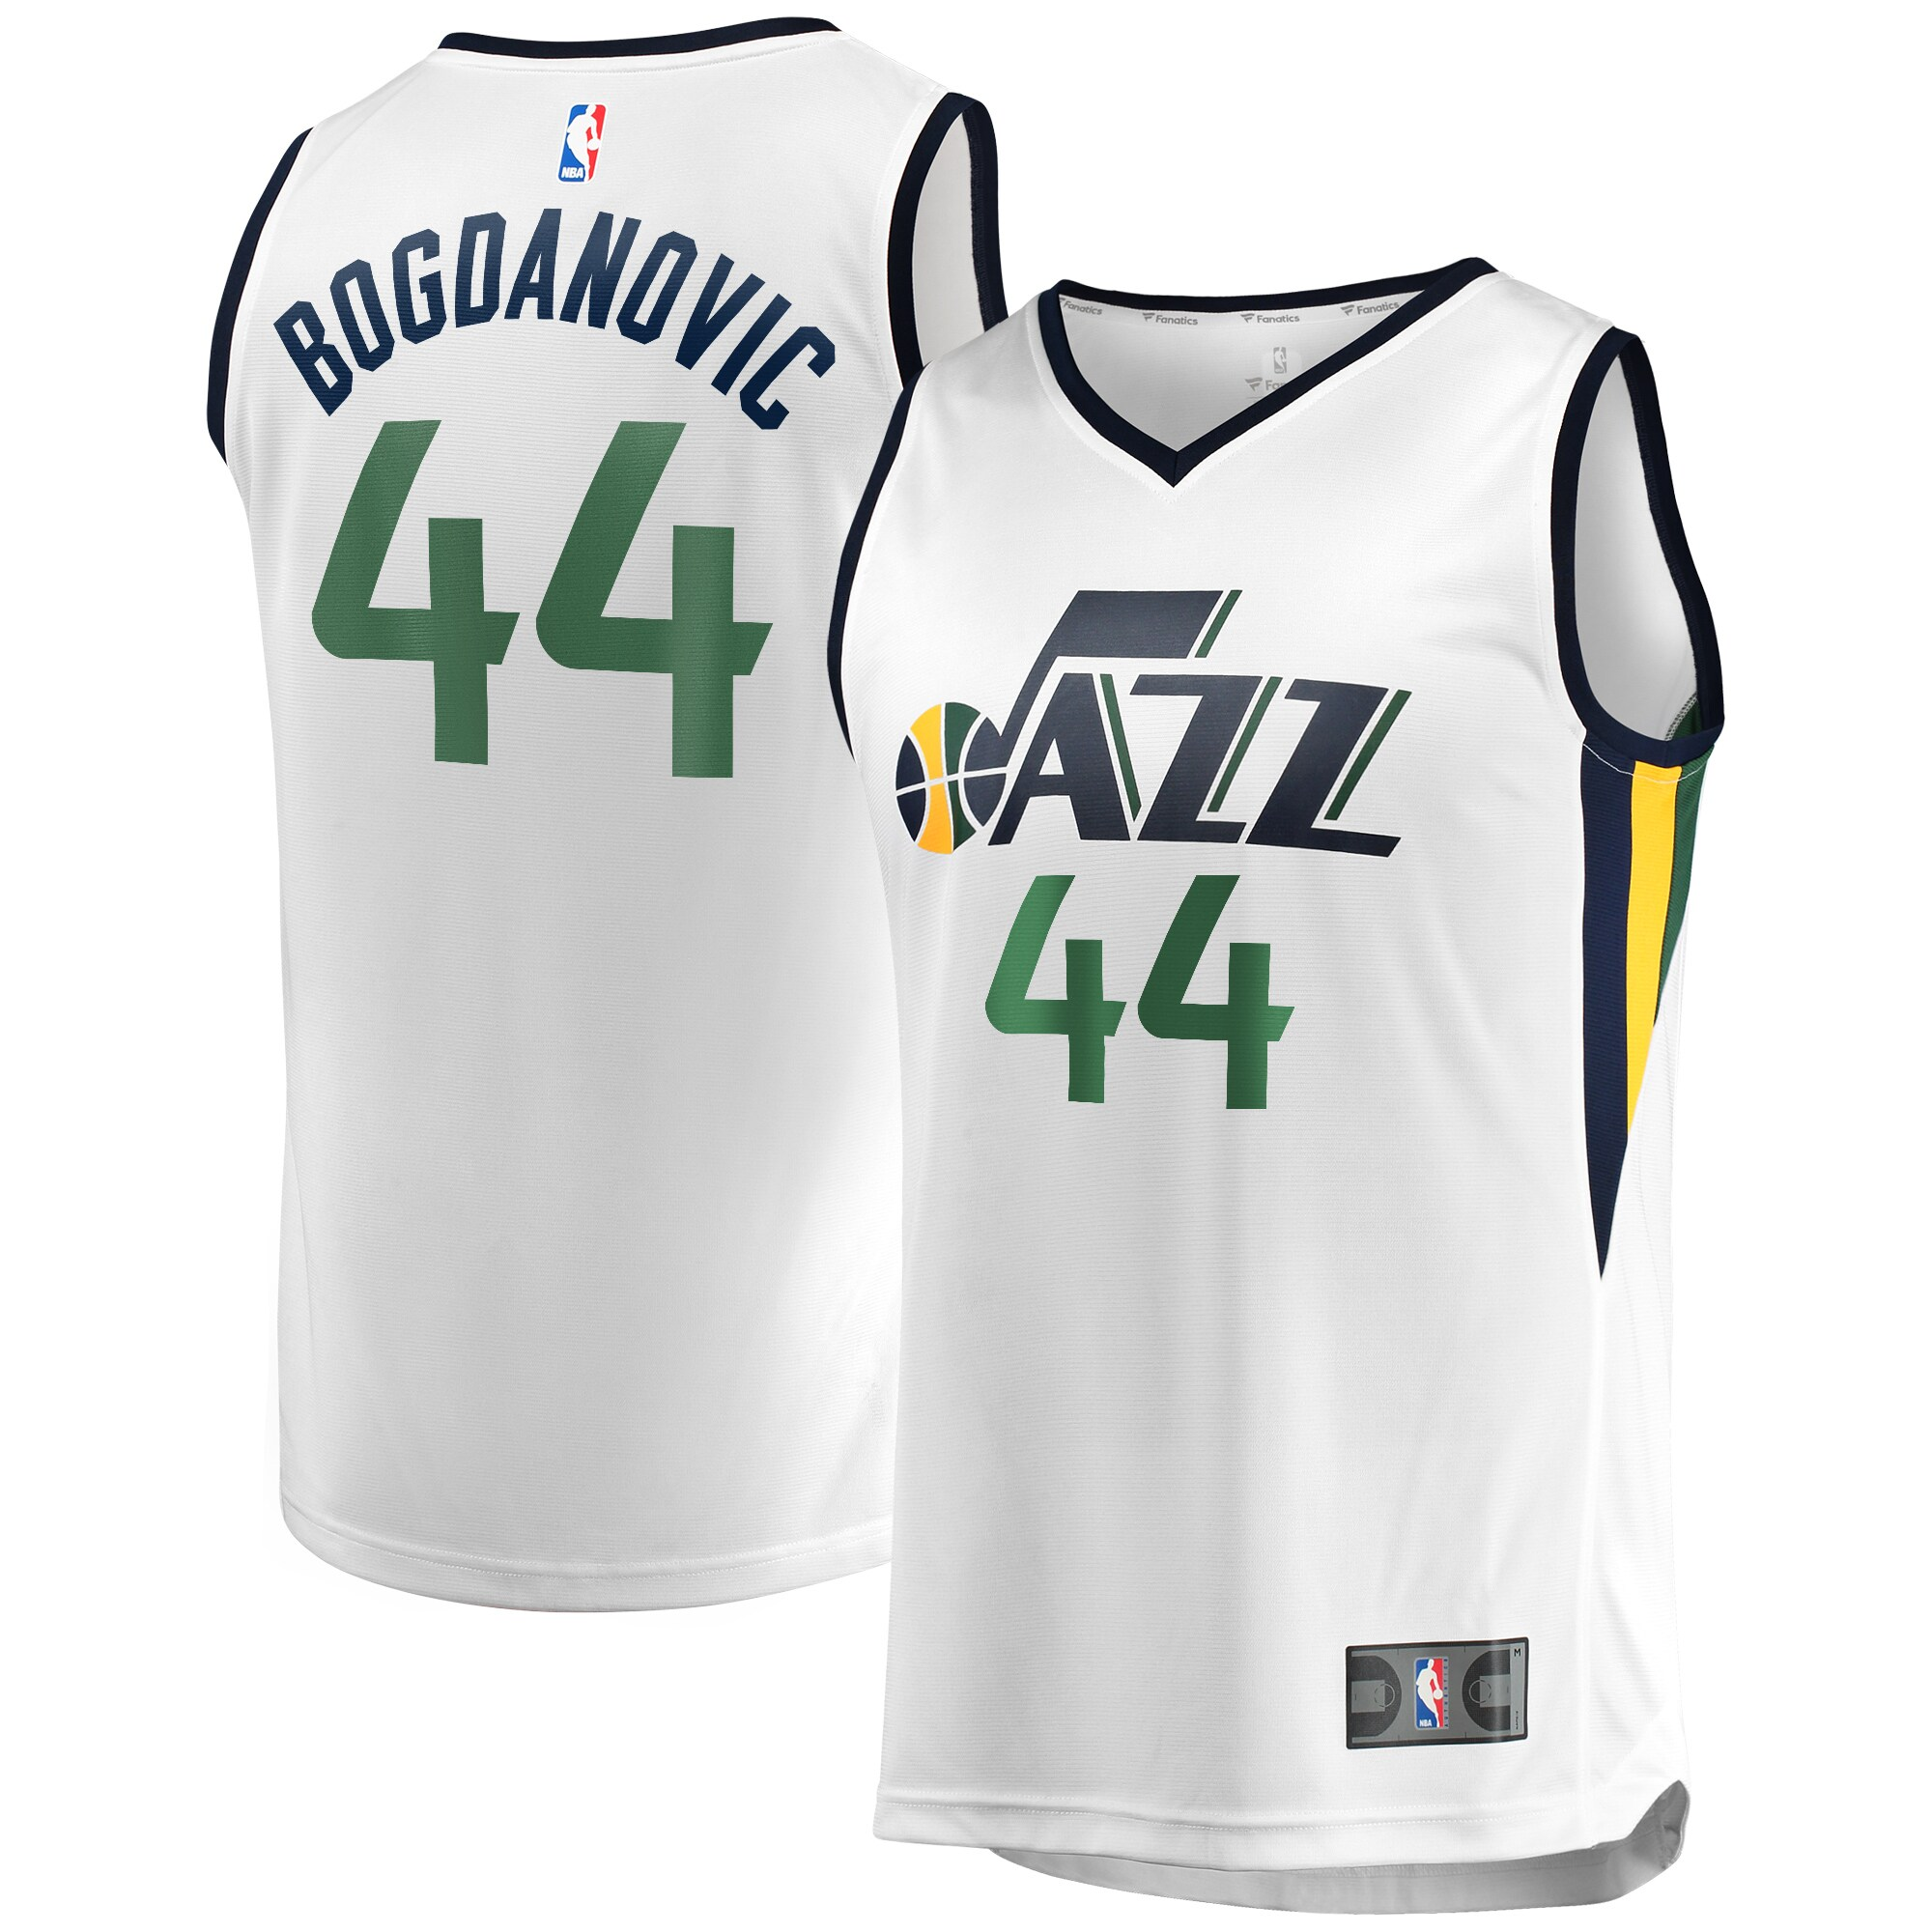 Bojan Bogdanovic Utah Jazz Fanatics Branded Youth Fast Break Replica Jersey White - Statement Edition